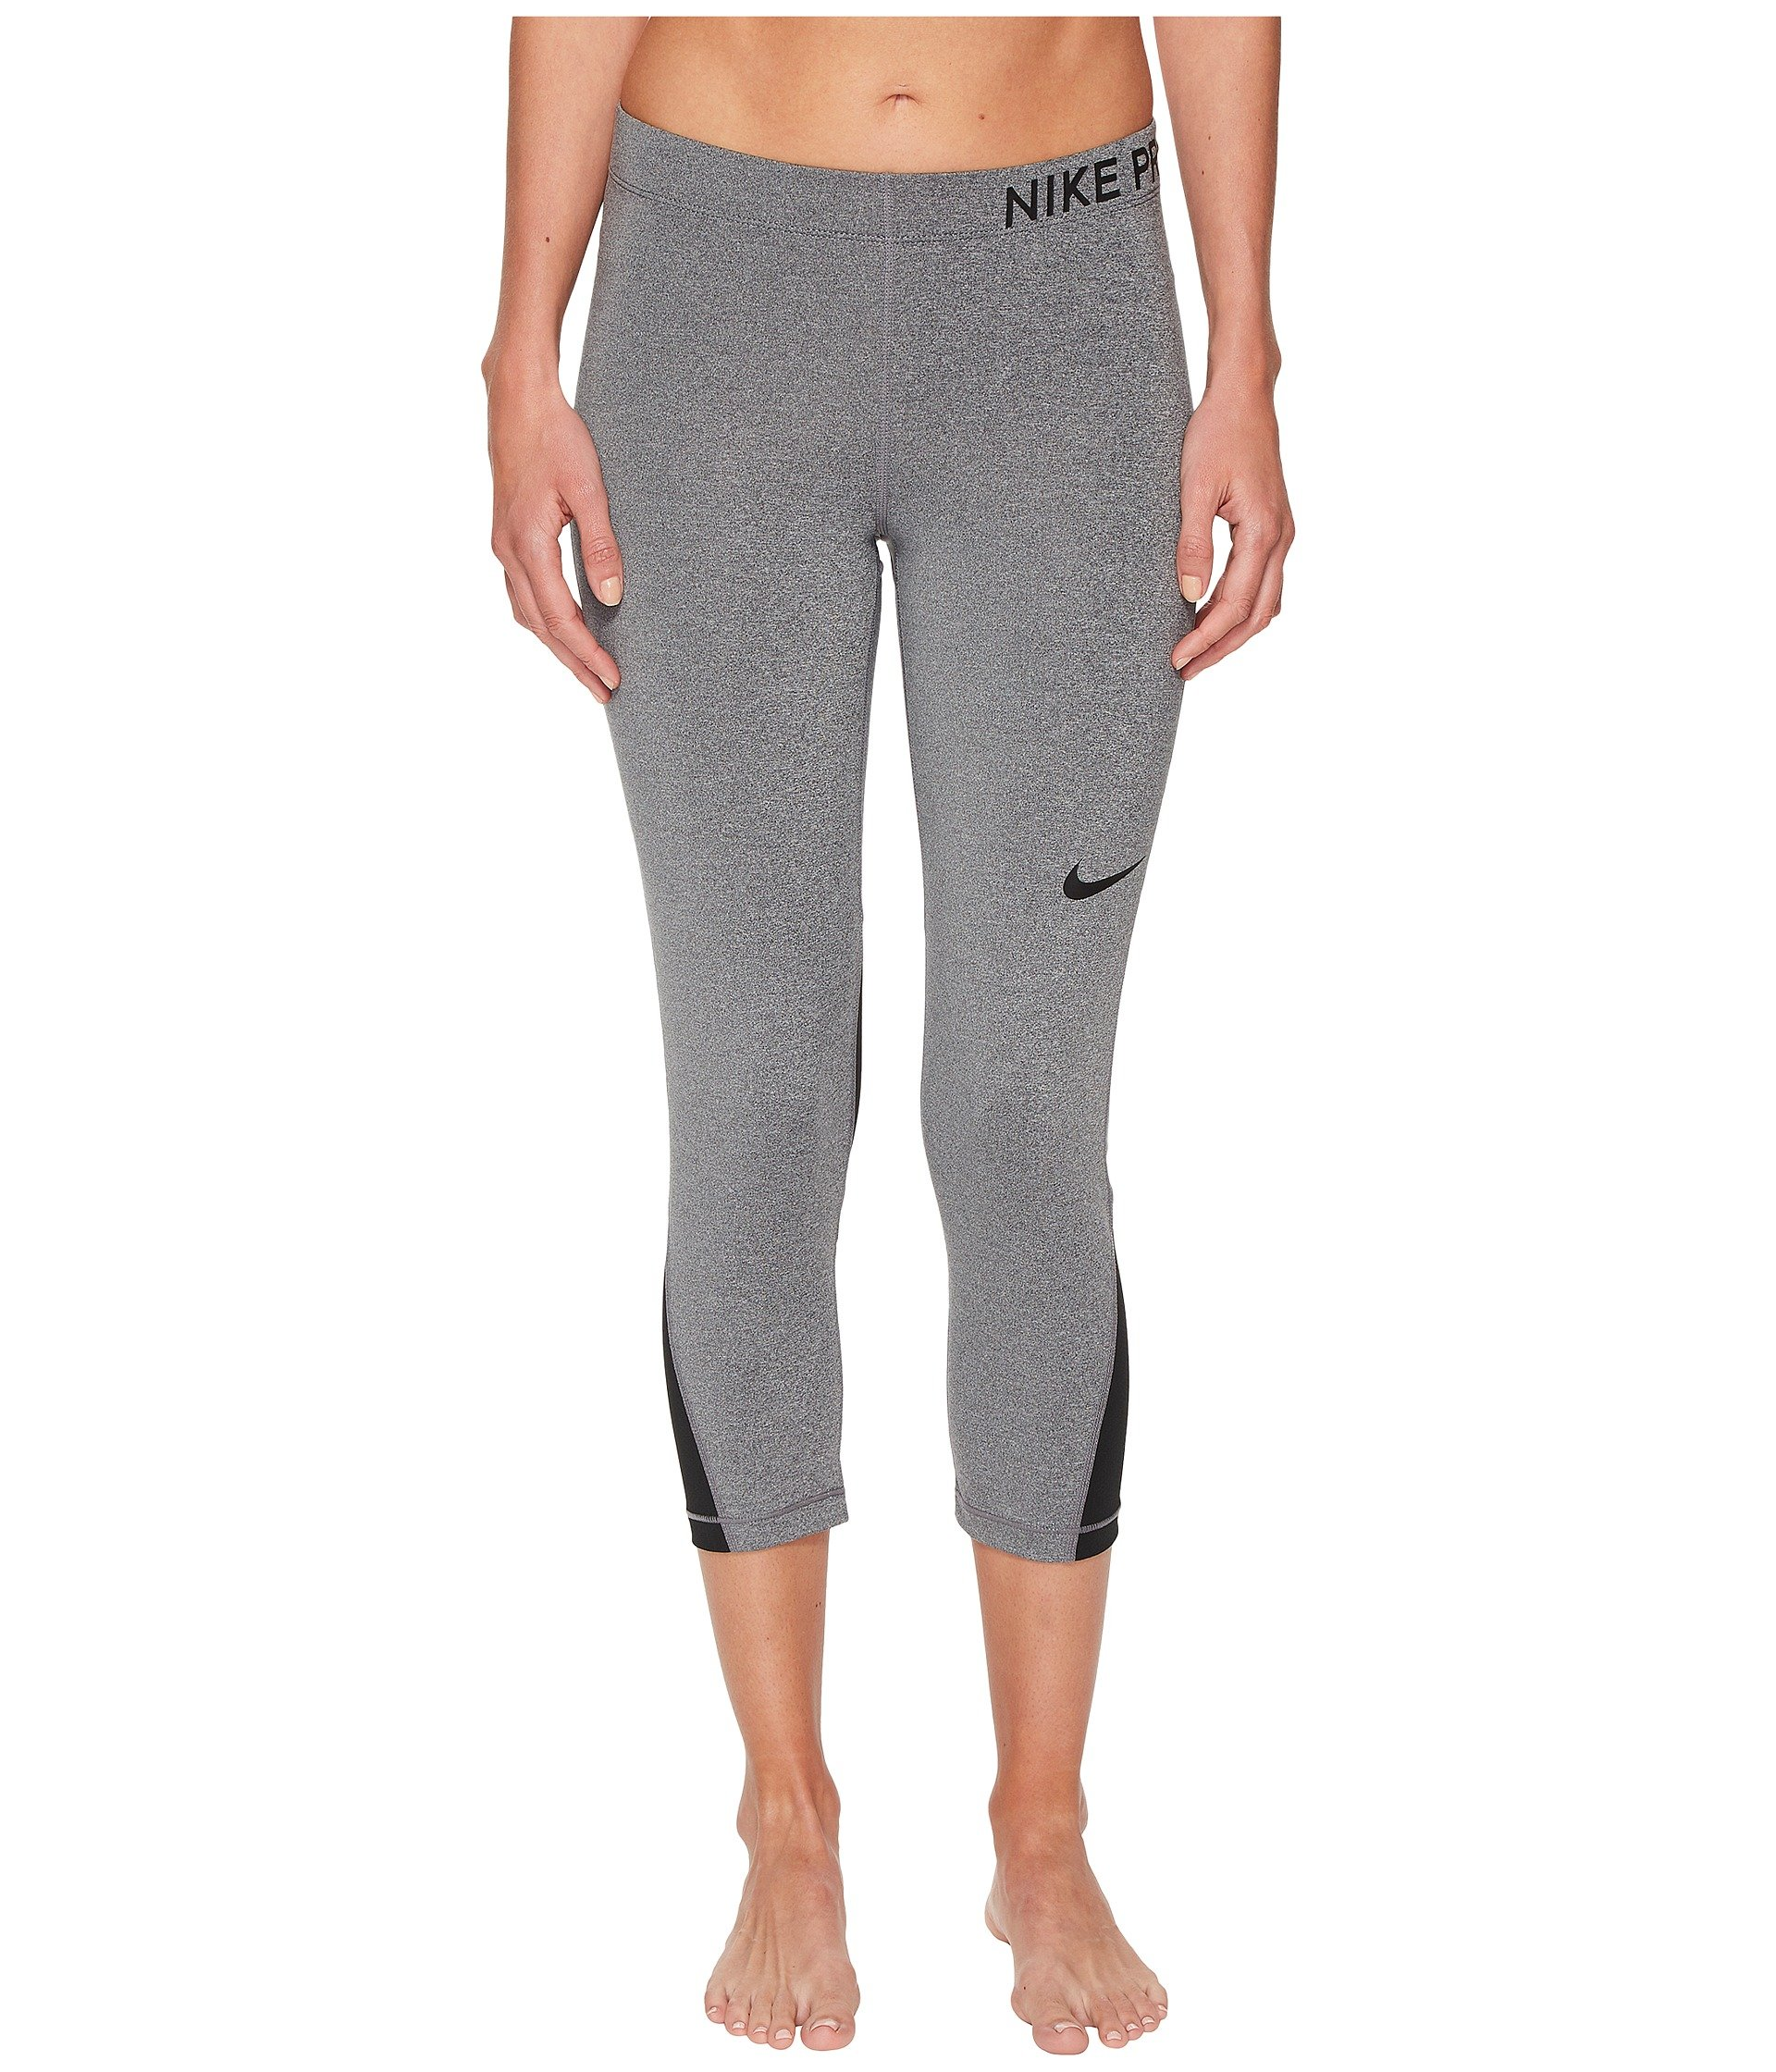 Nike Women's Pro Capri Charcoal Heather/Black/Black Small 20.5 by Nike